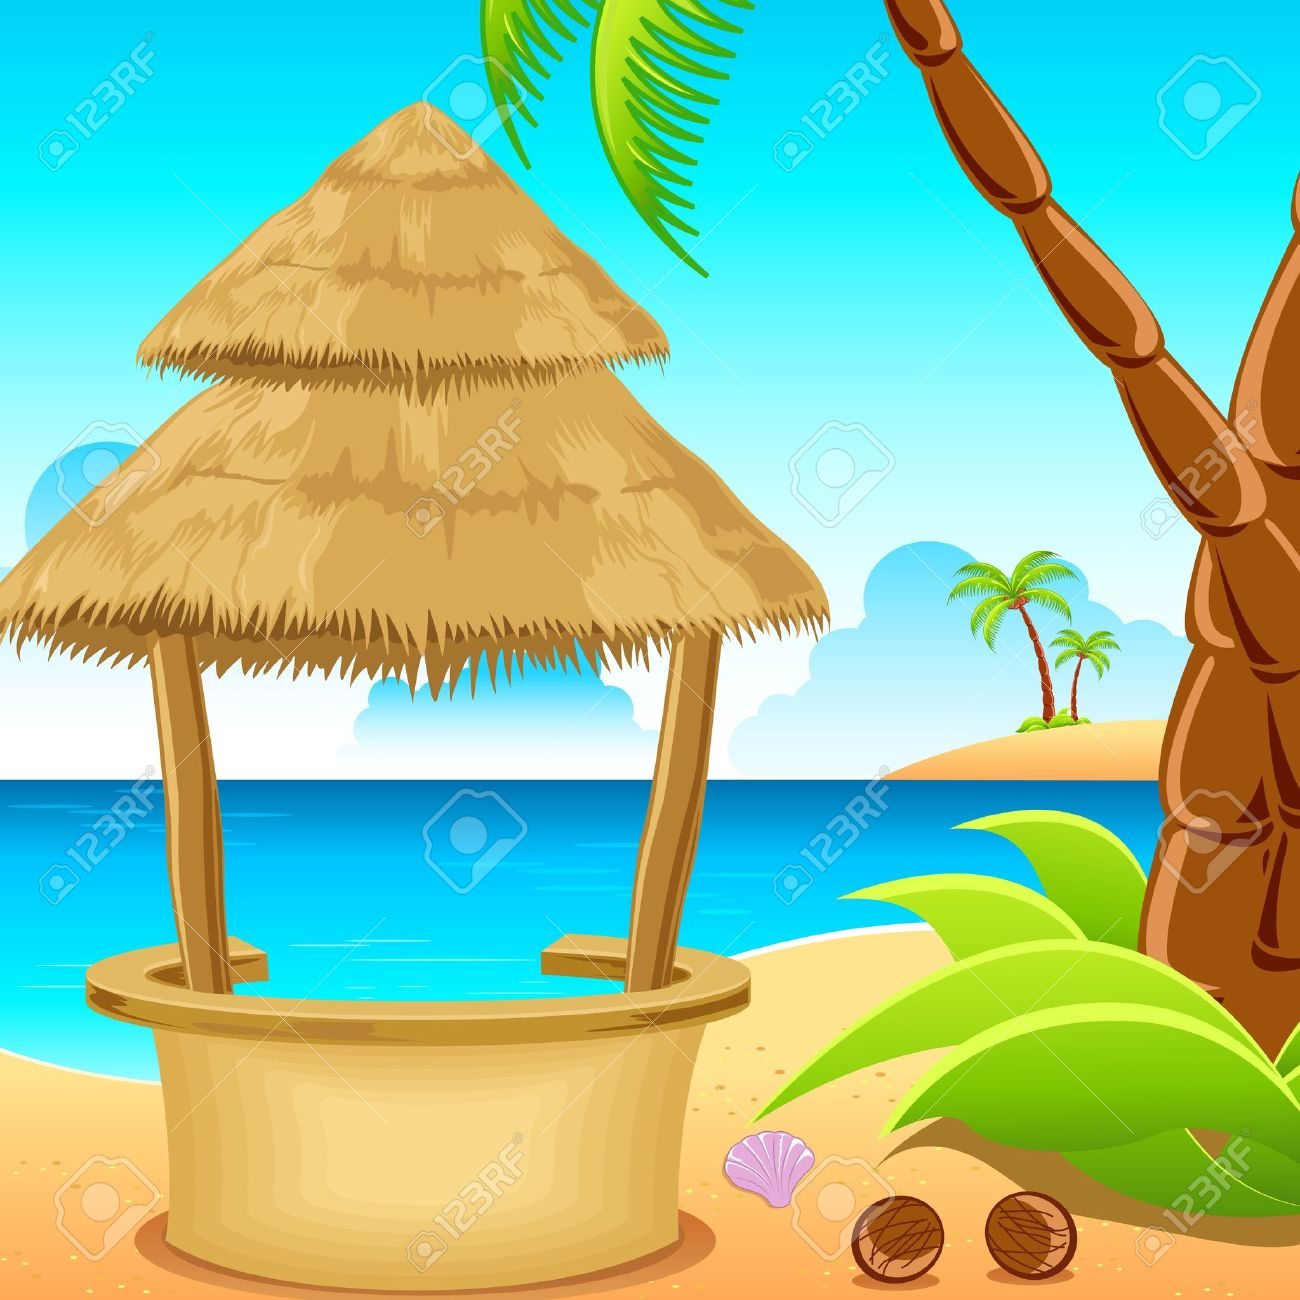 illustration of straw hut on lonely beach with coconut tree.. Stock Vector - 9321195